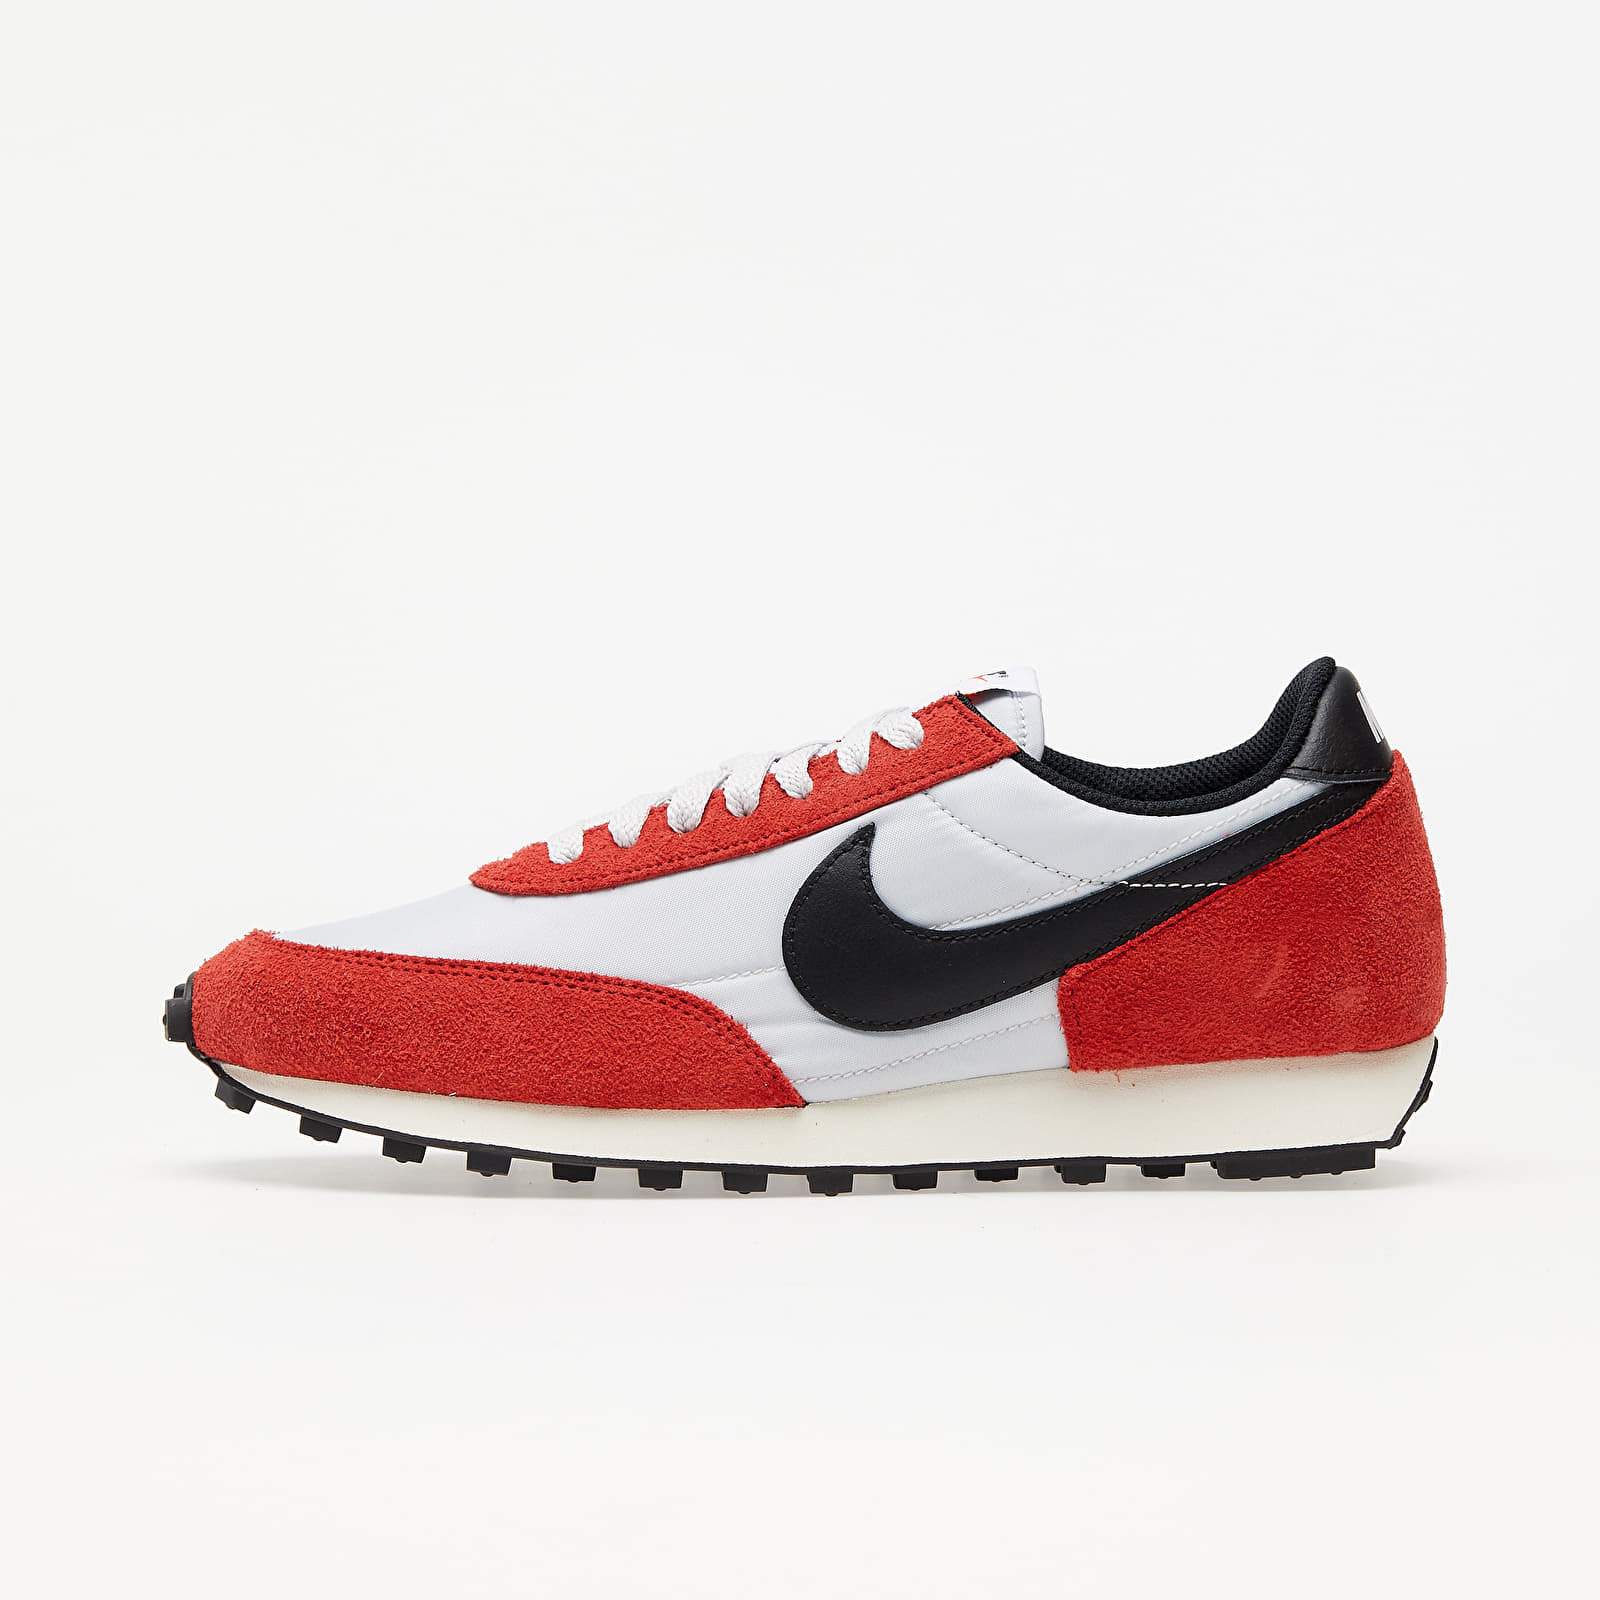 Nike Daybreak Pure Platinum/ Black-Gym Red-Sail DB4635-001